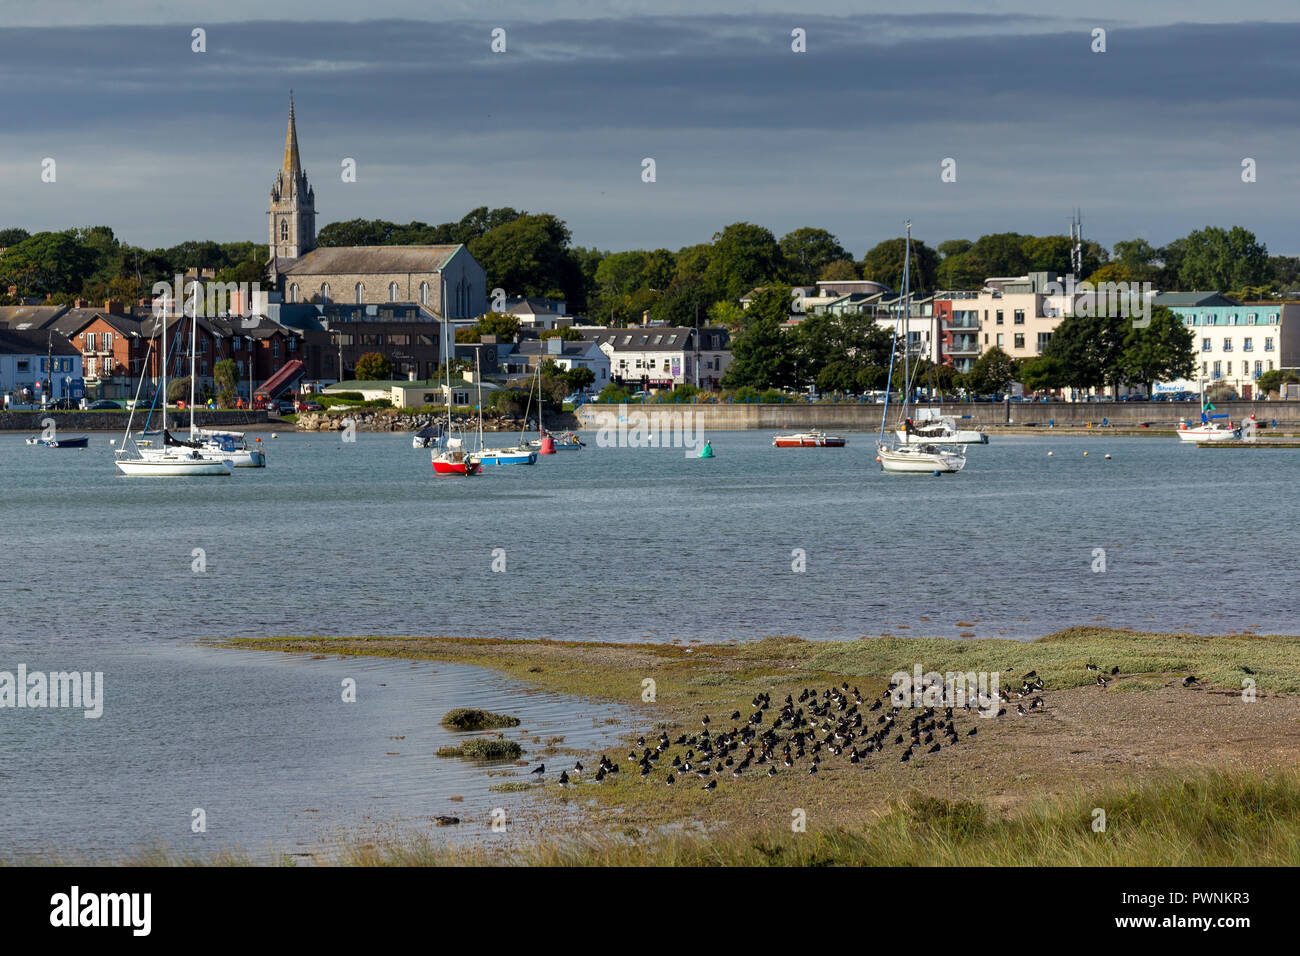 Malahide Estuary Dublin with Oyster Catchers on the sands. - Stock Image